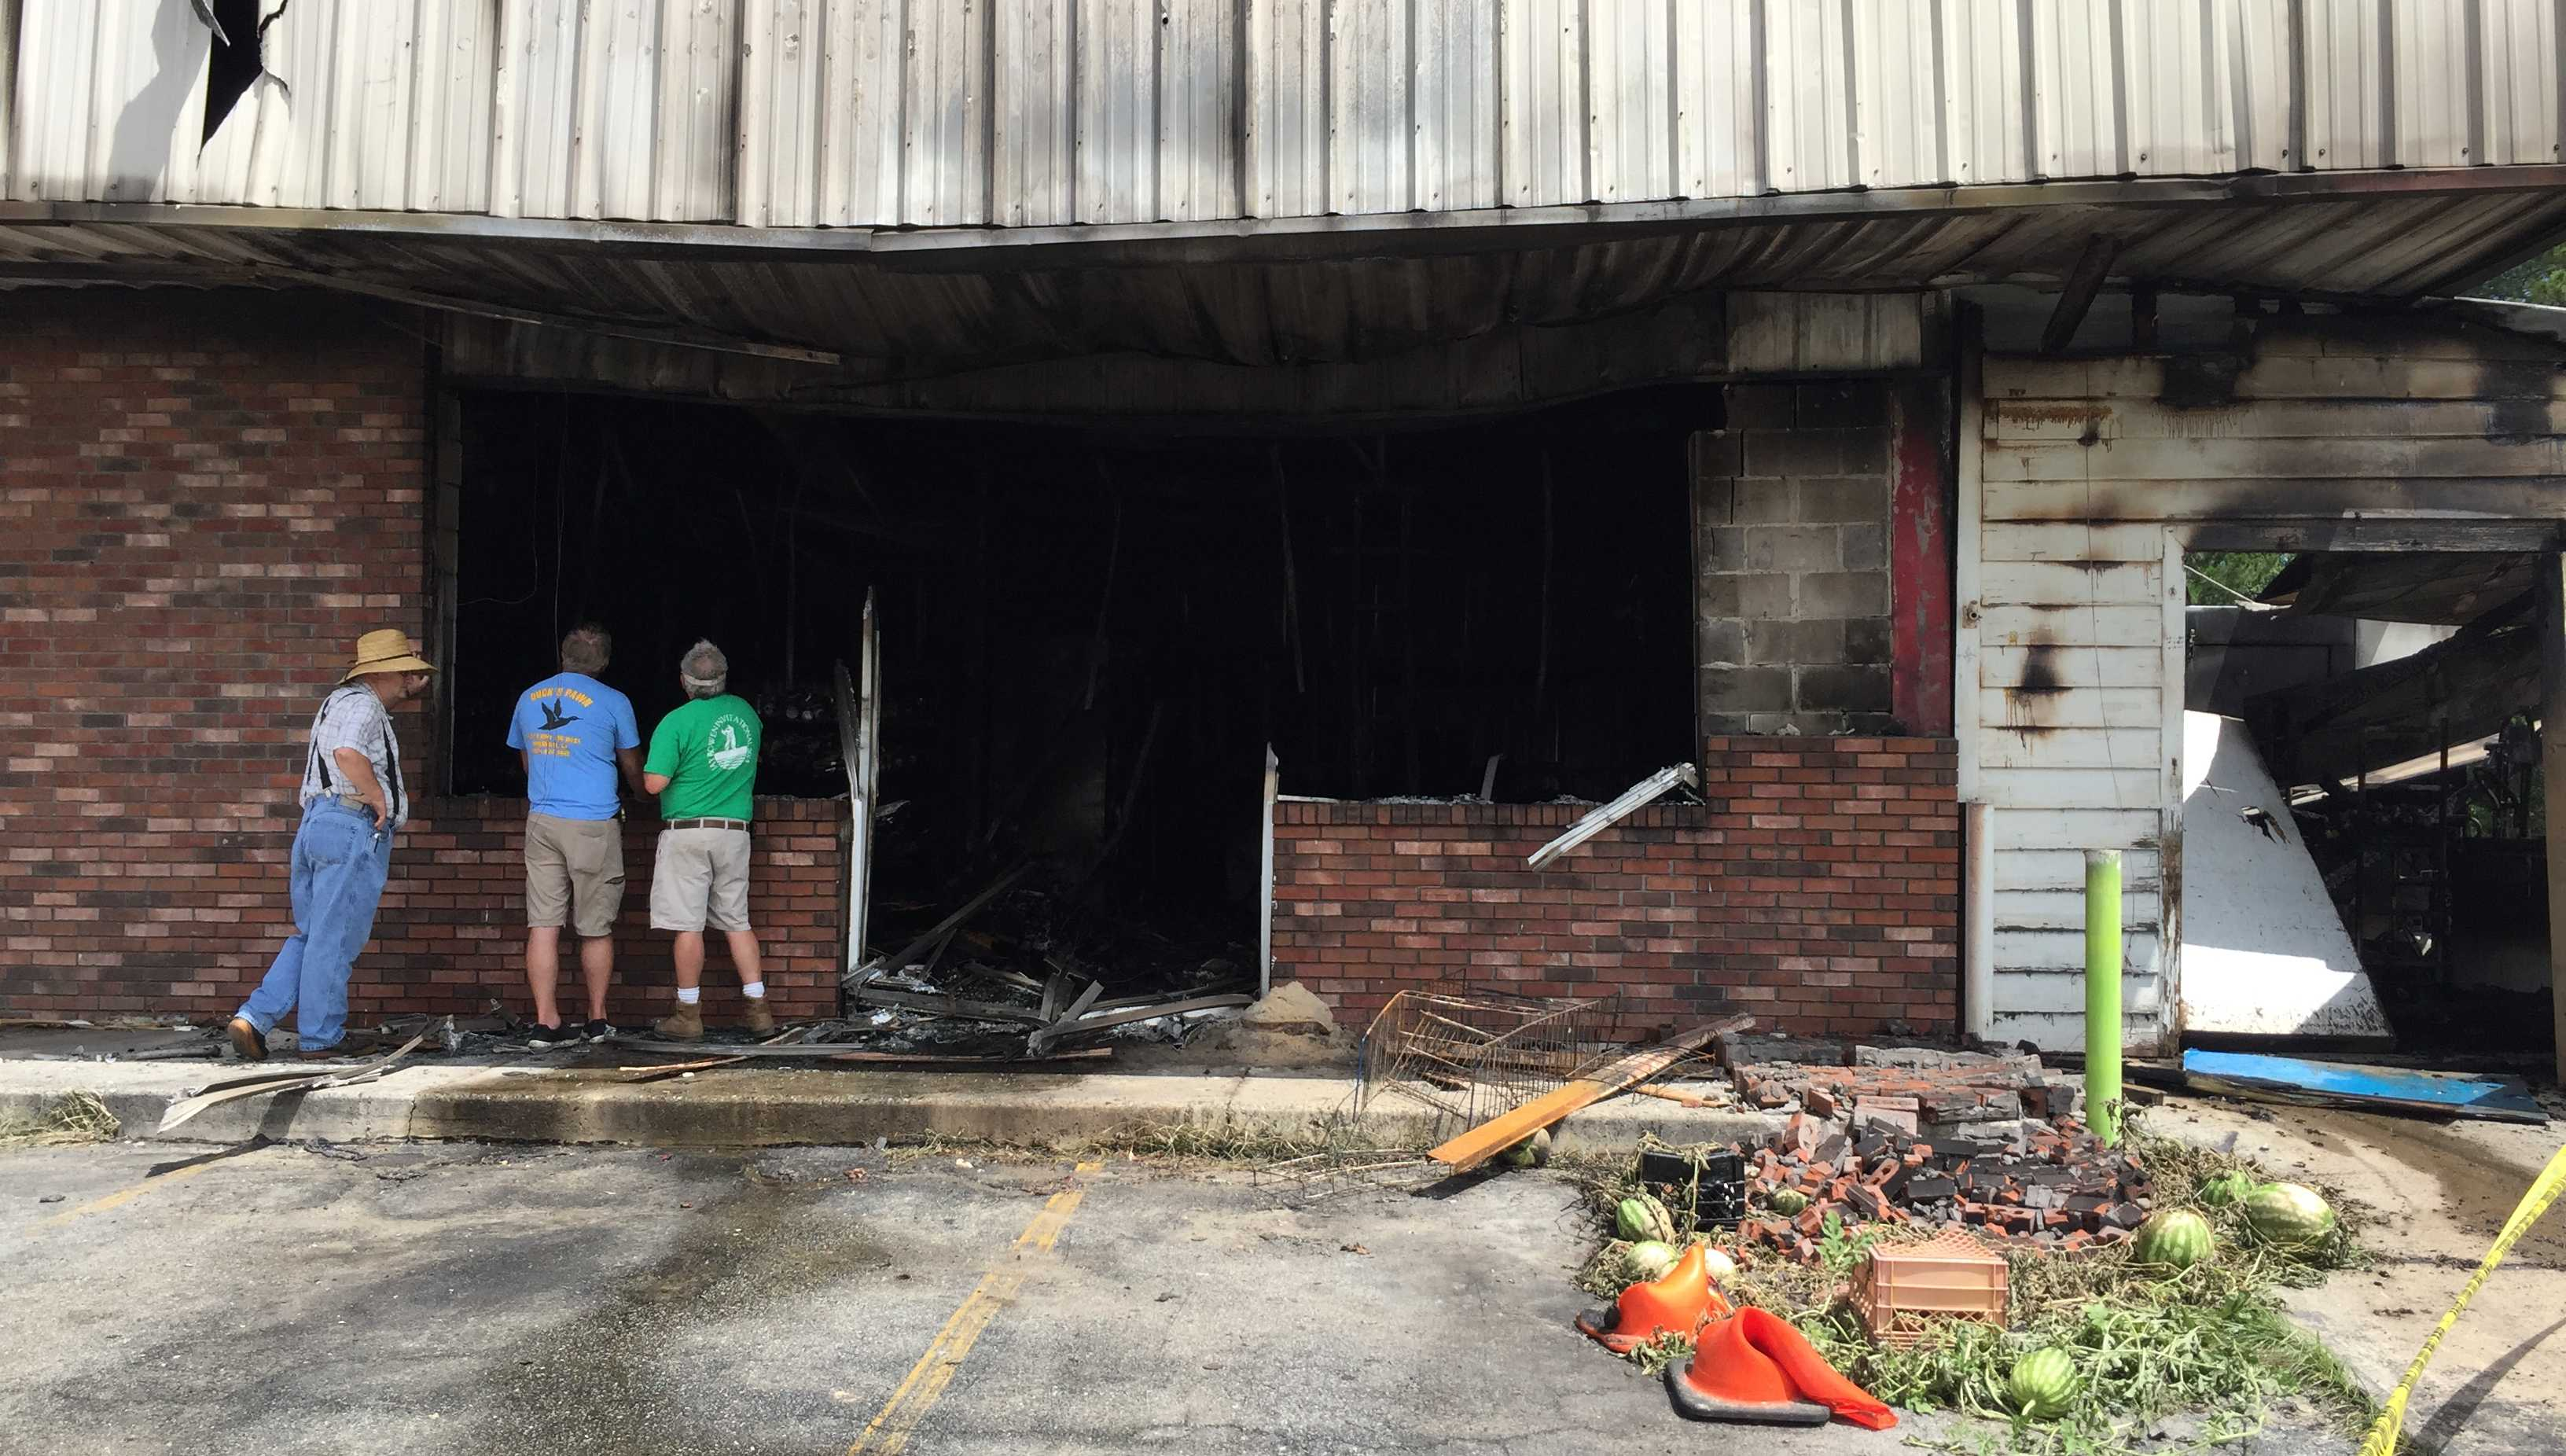 R and J Produce in Hinesville destroyed by fire Monday morning